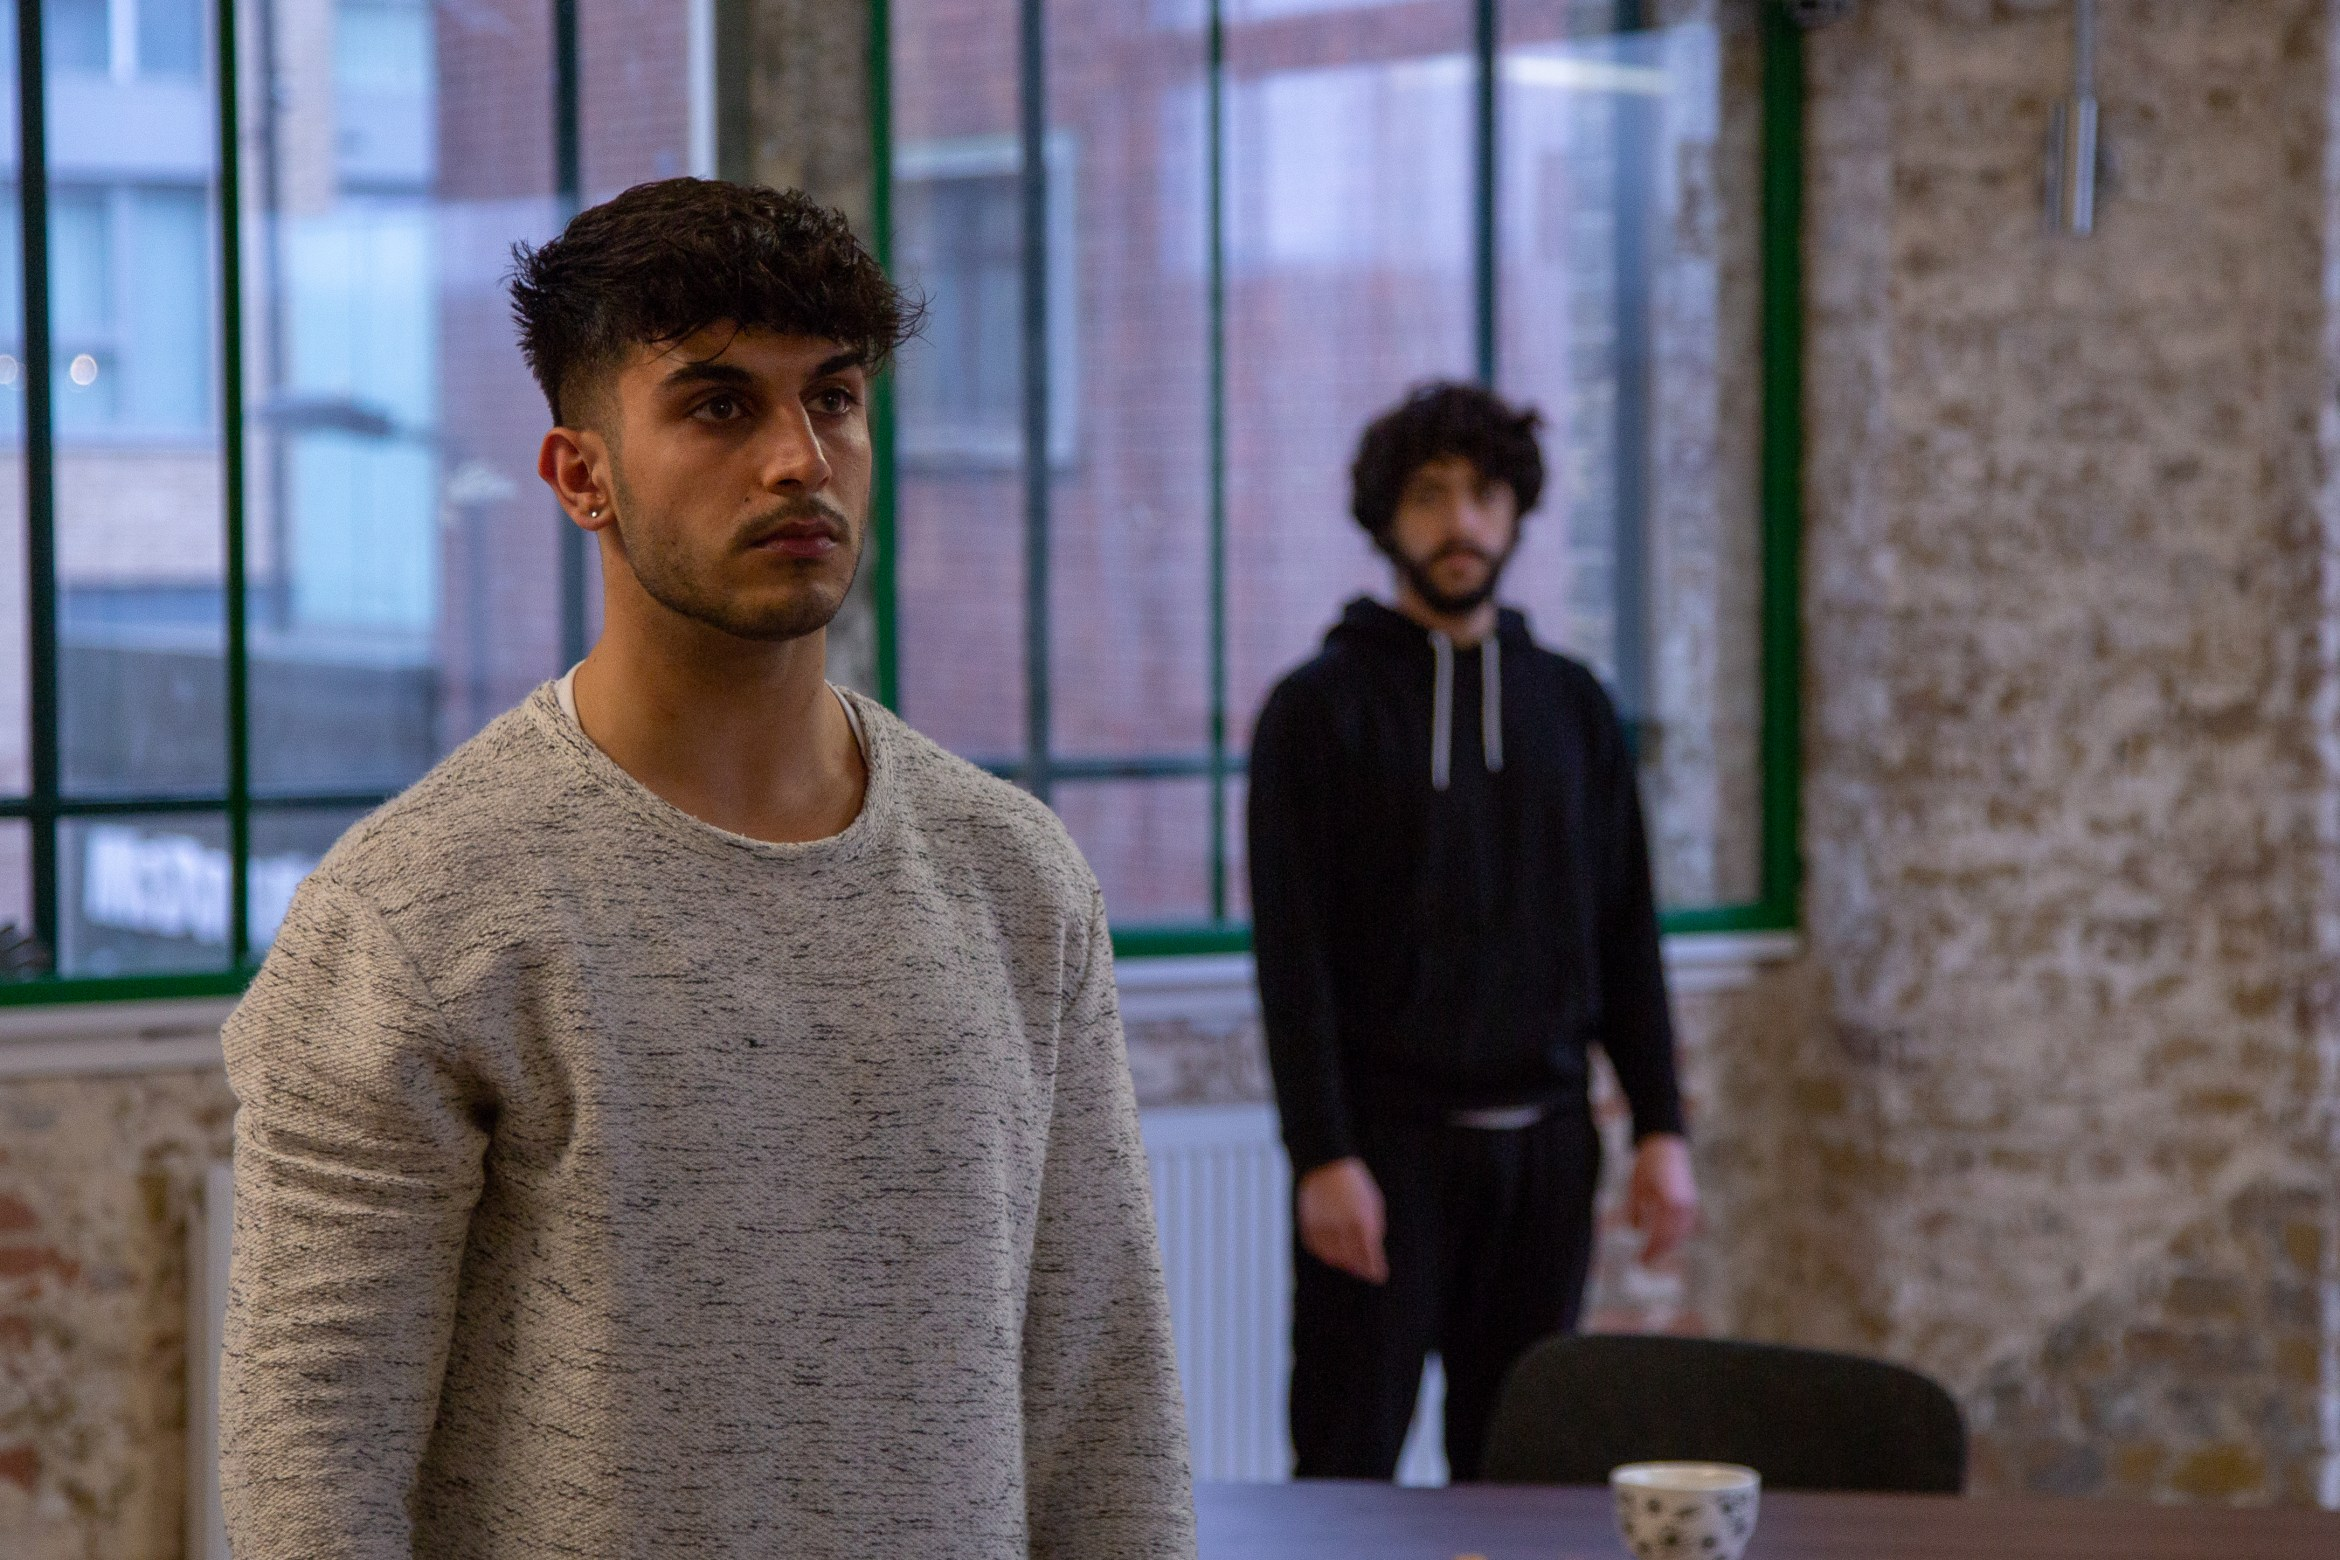 Moormaid - Rehearsal Images (Moe Bar-El and Ali Azhar), courtesy of Meurig Marshall Photography